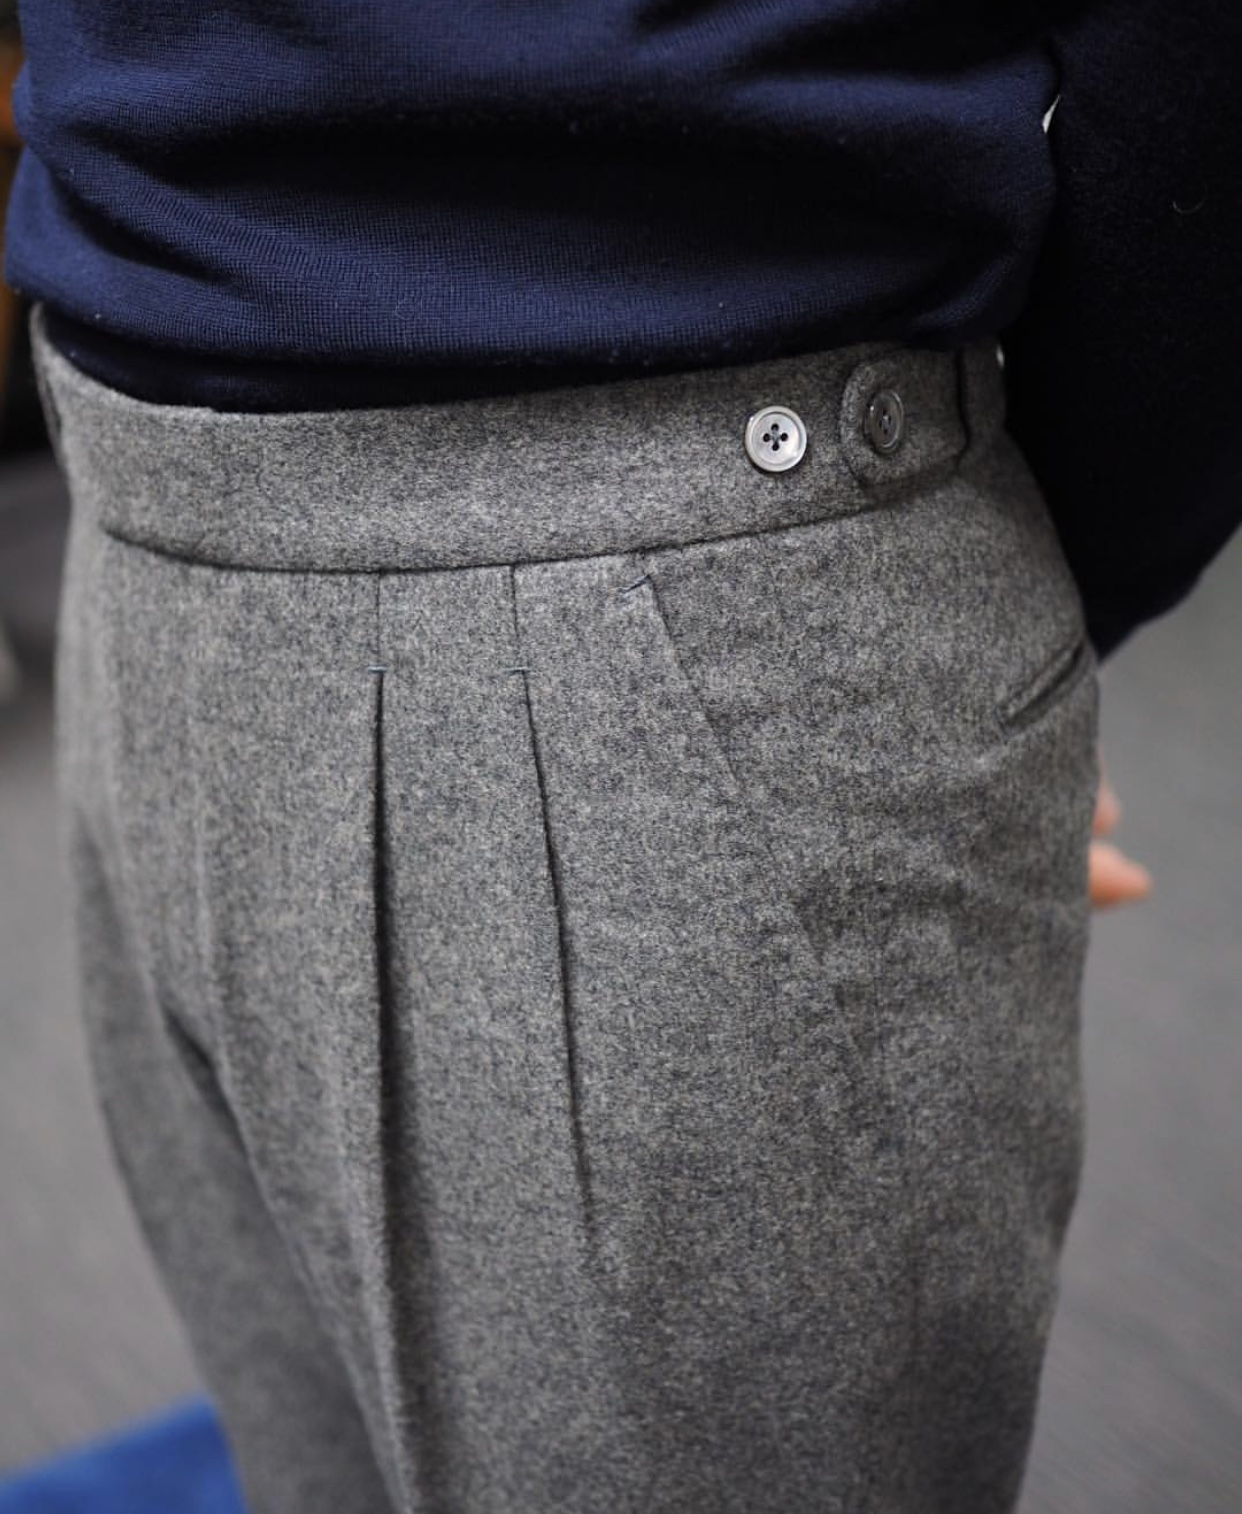 Fox Brothers double reverse pleats with button side adjusters